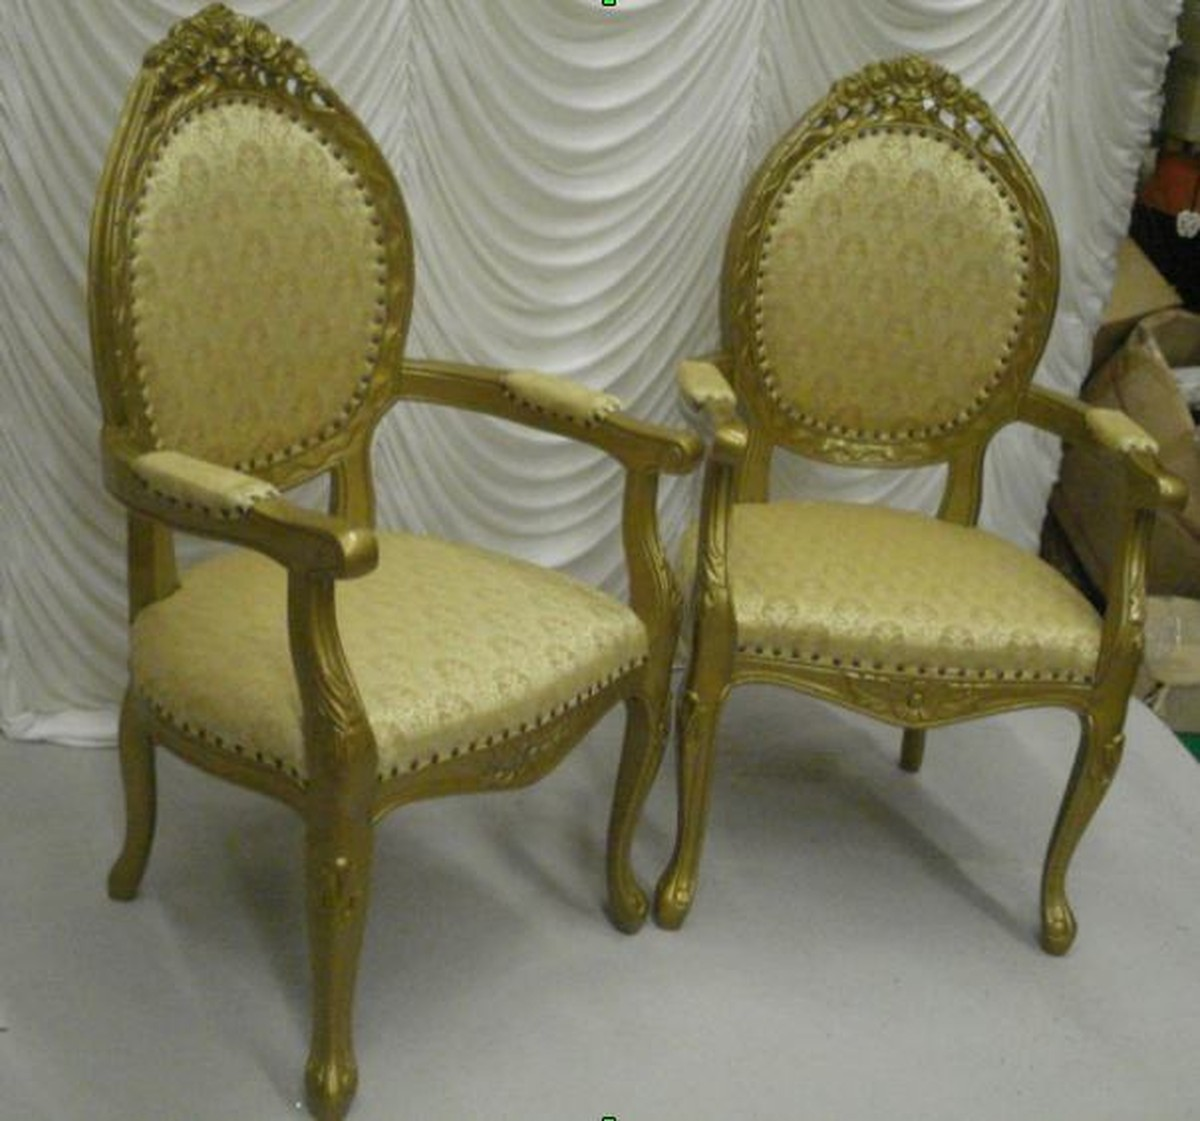 Indian wedding chairs for sale. Secondhand Chairs and Tables   Retro Vintage or Antique Furniture